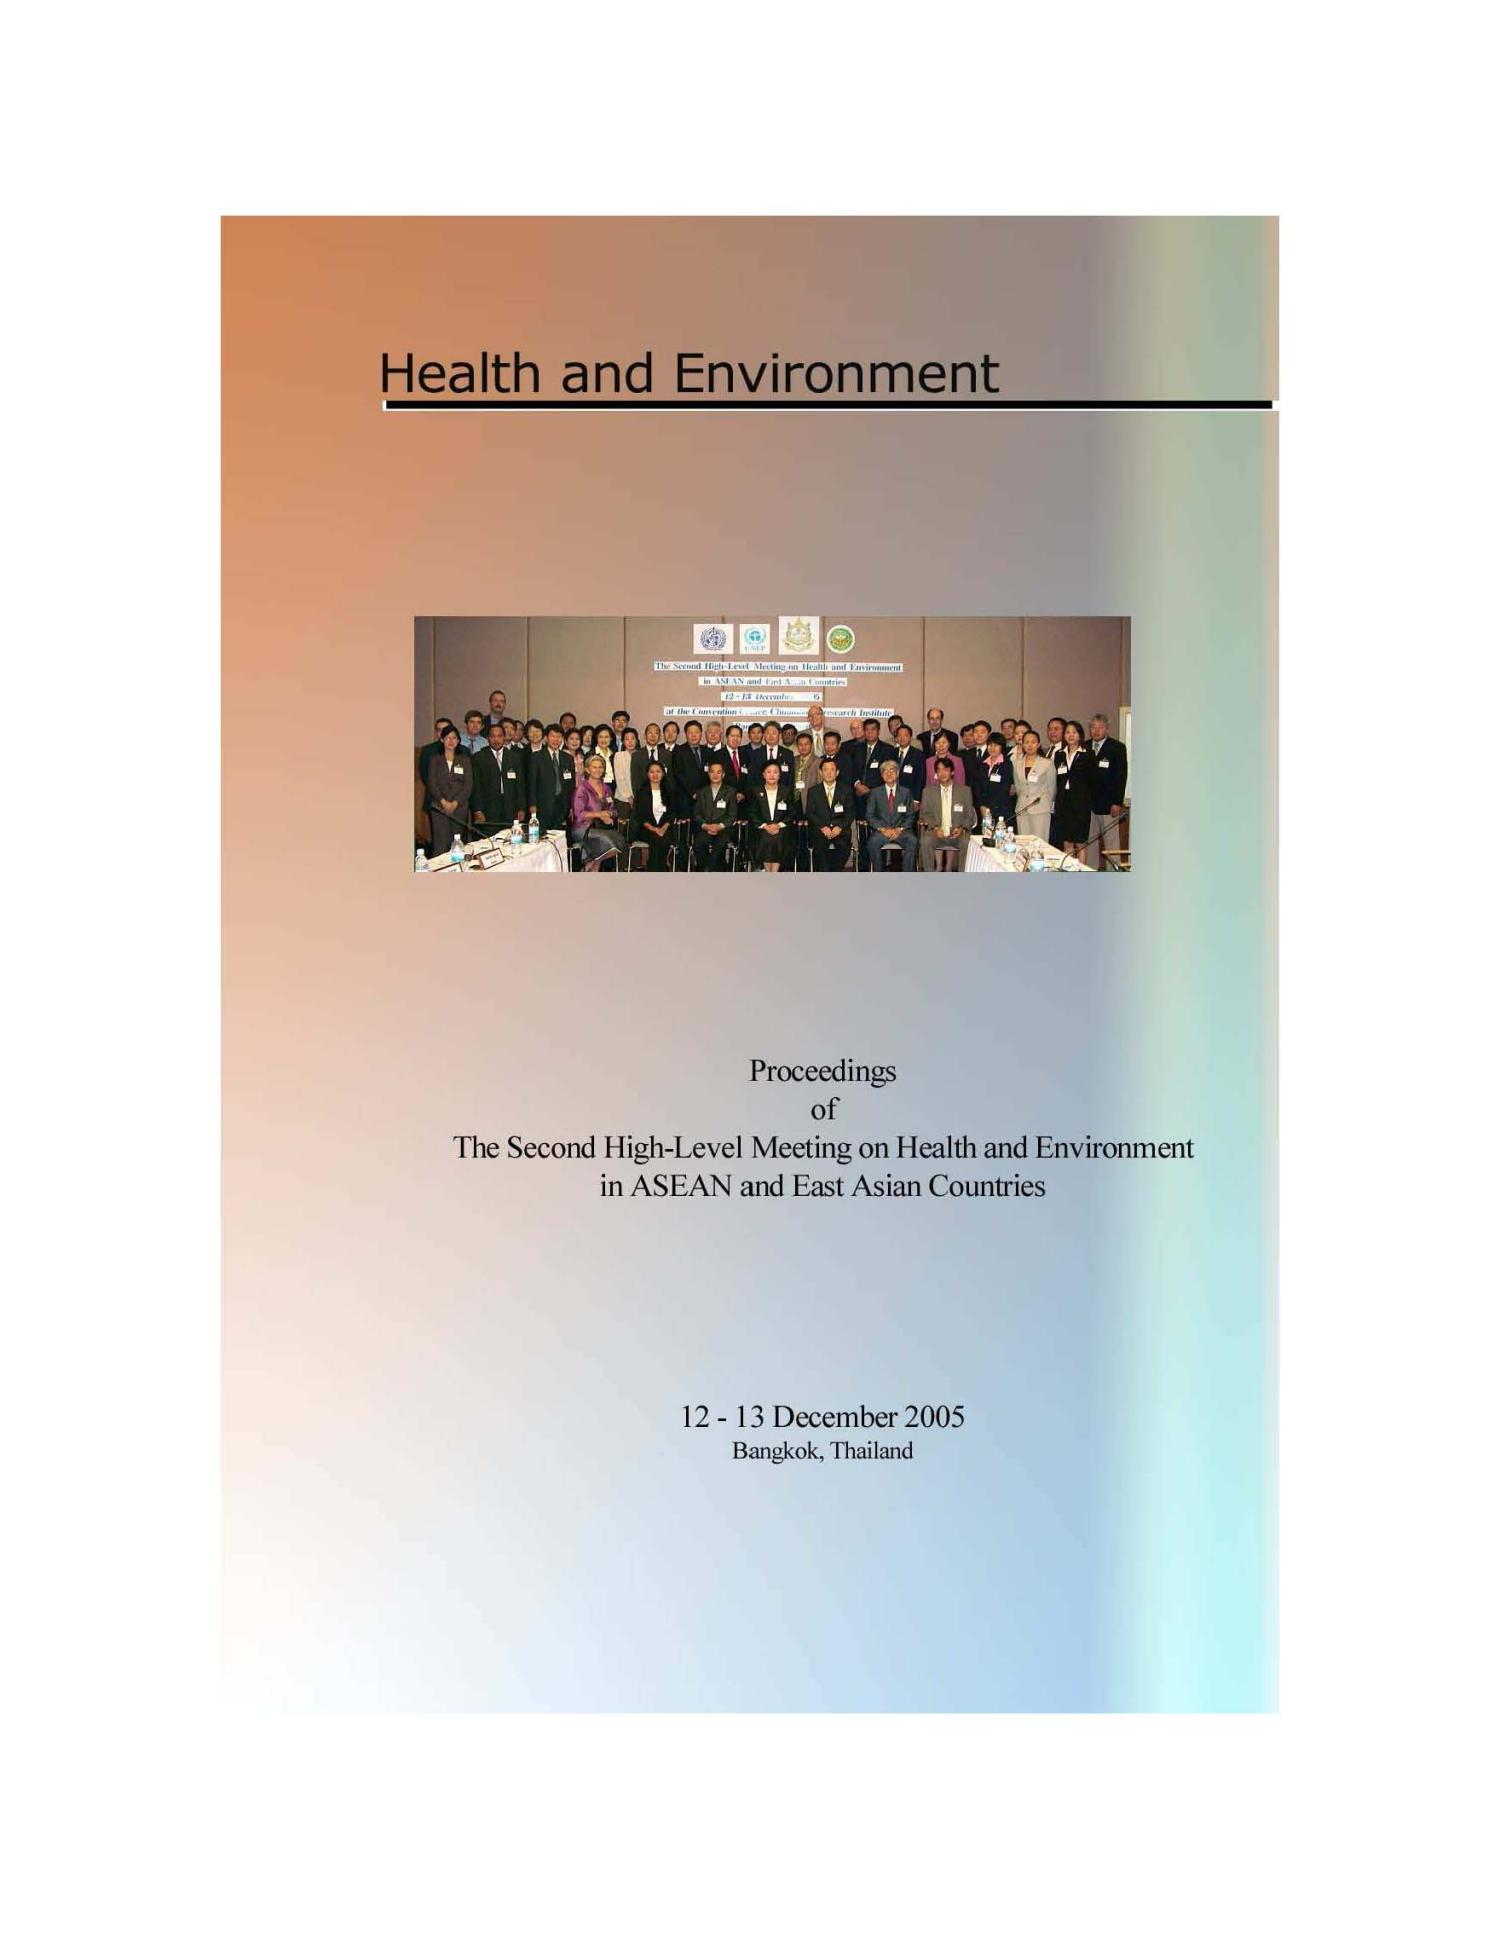 2nd High-Level Meeting on Health and Environment in ASEAN and East Asian Countries                                                                                                      1